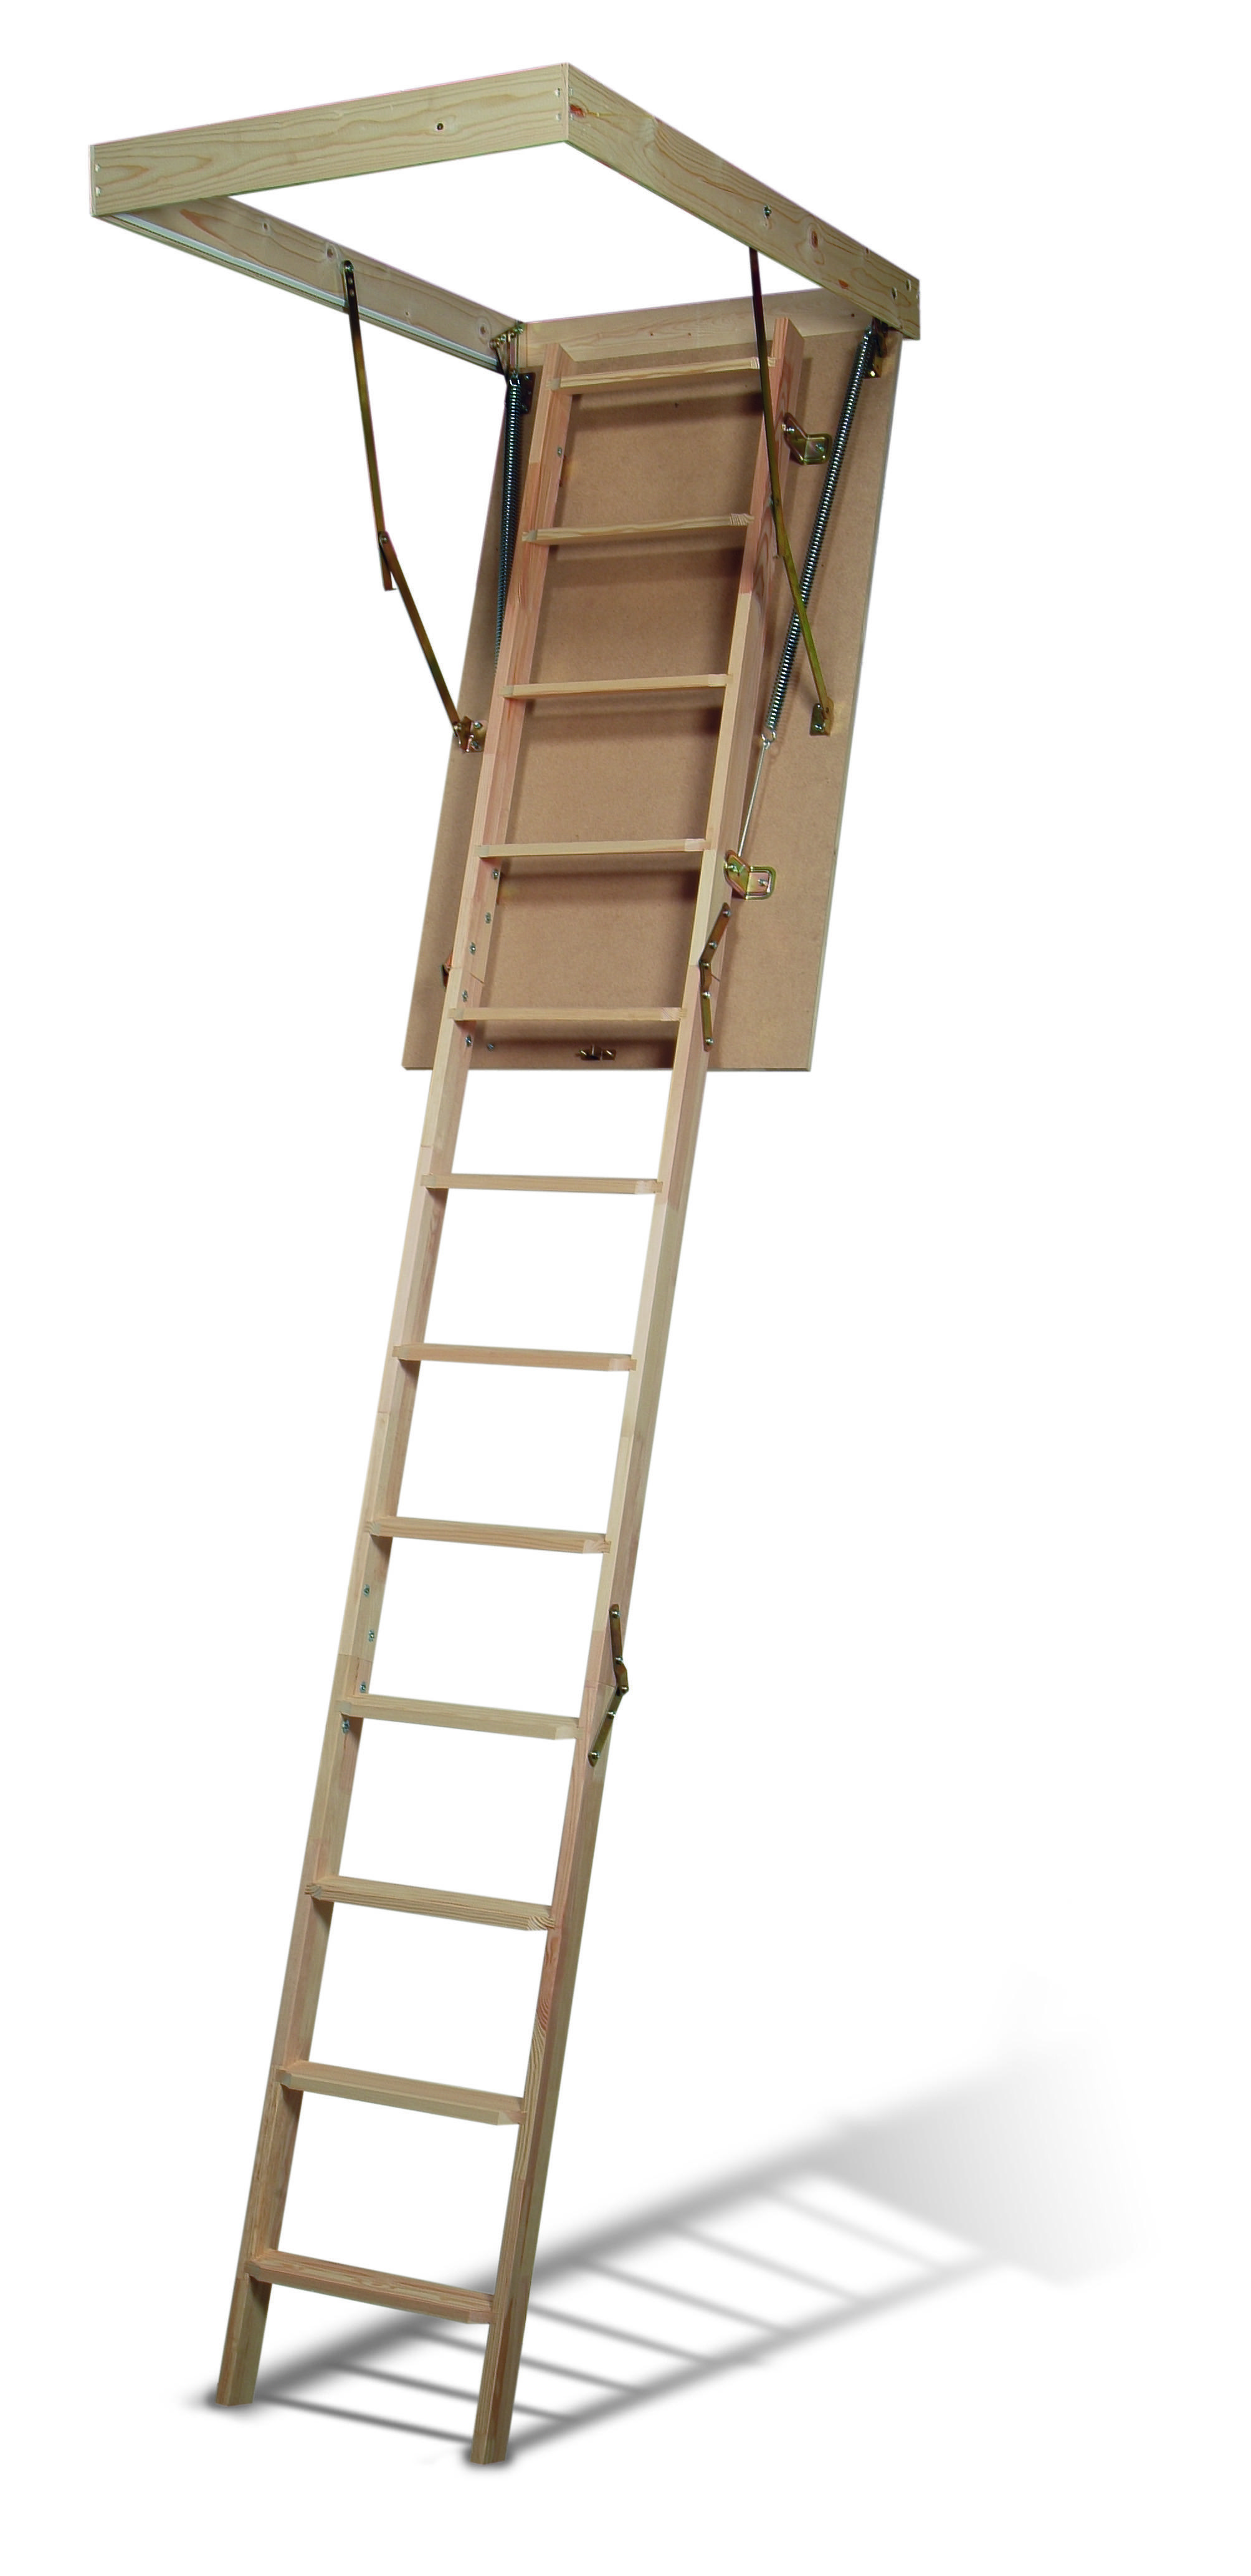 Dolle Traditionel Attic Ladders